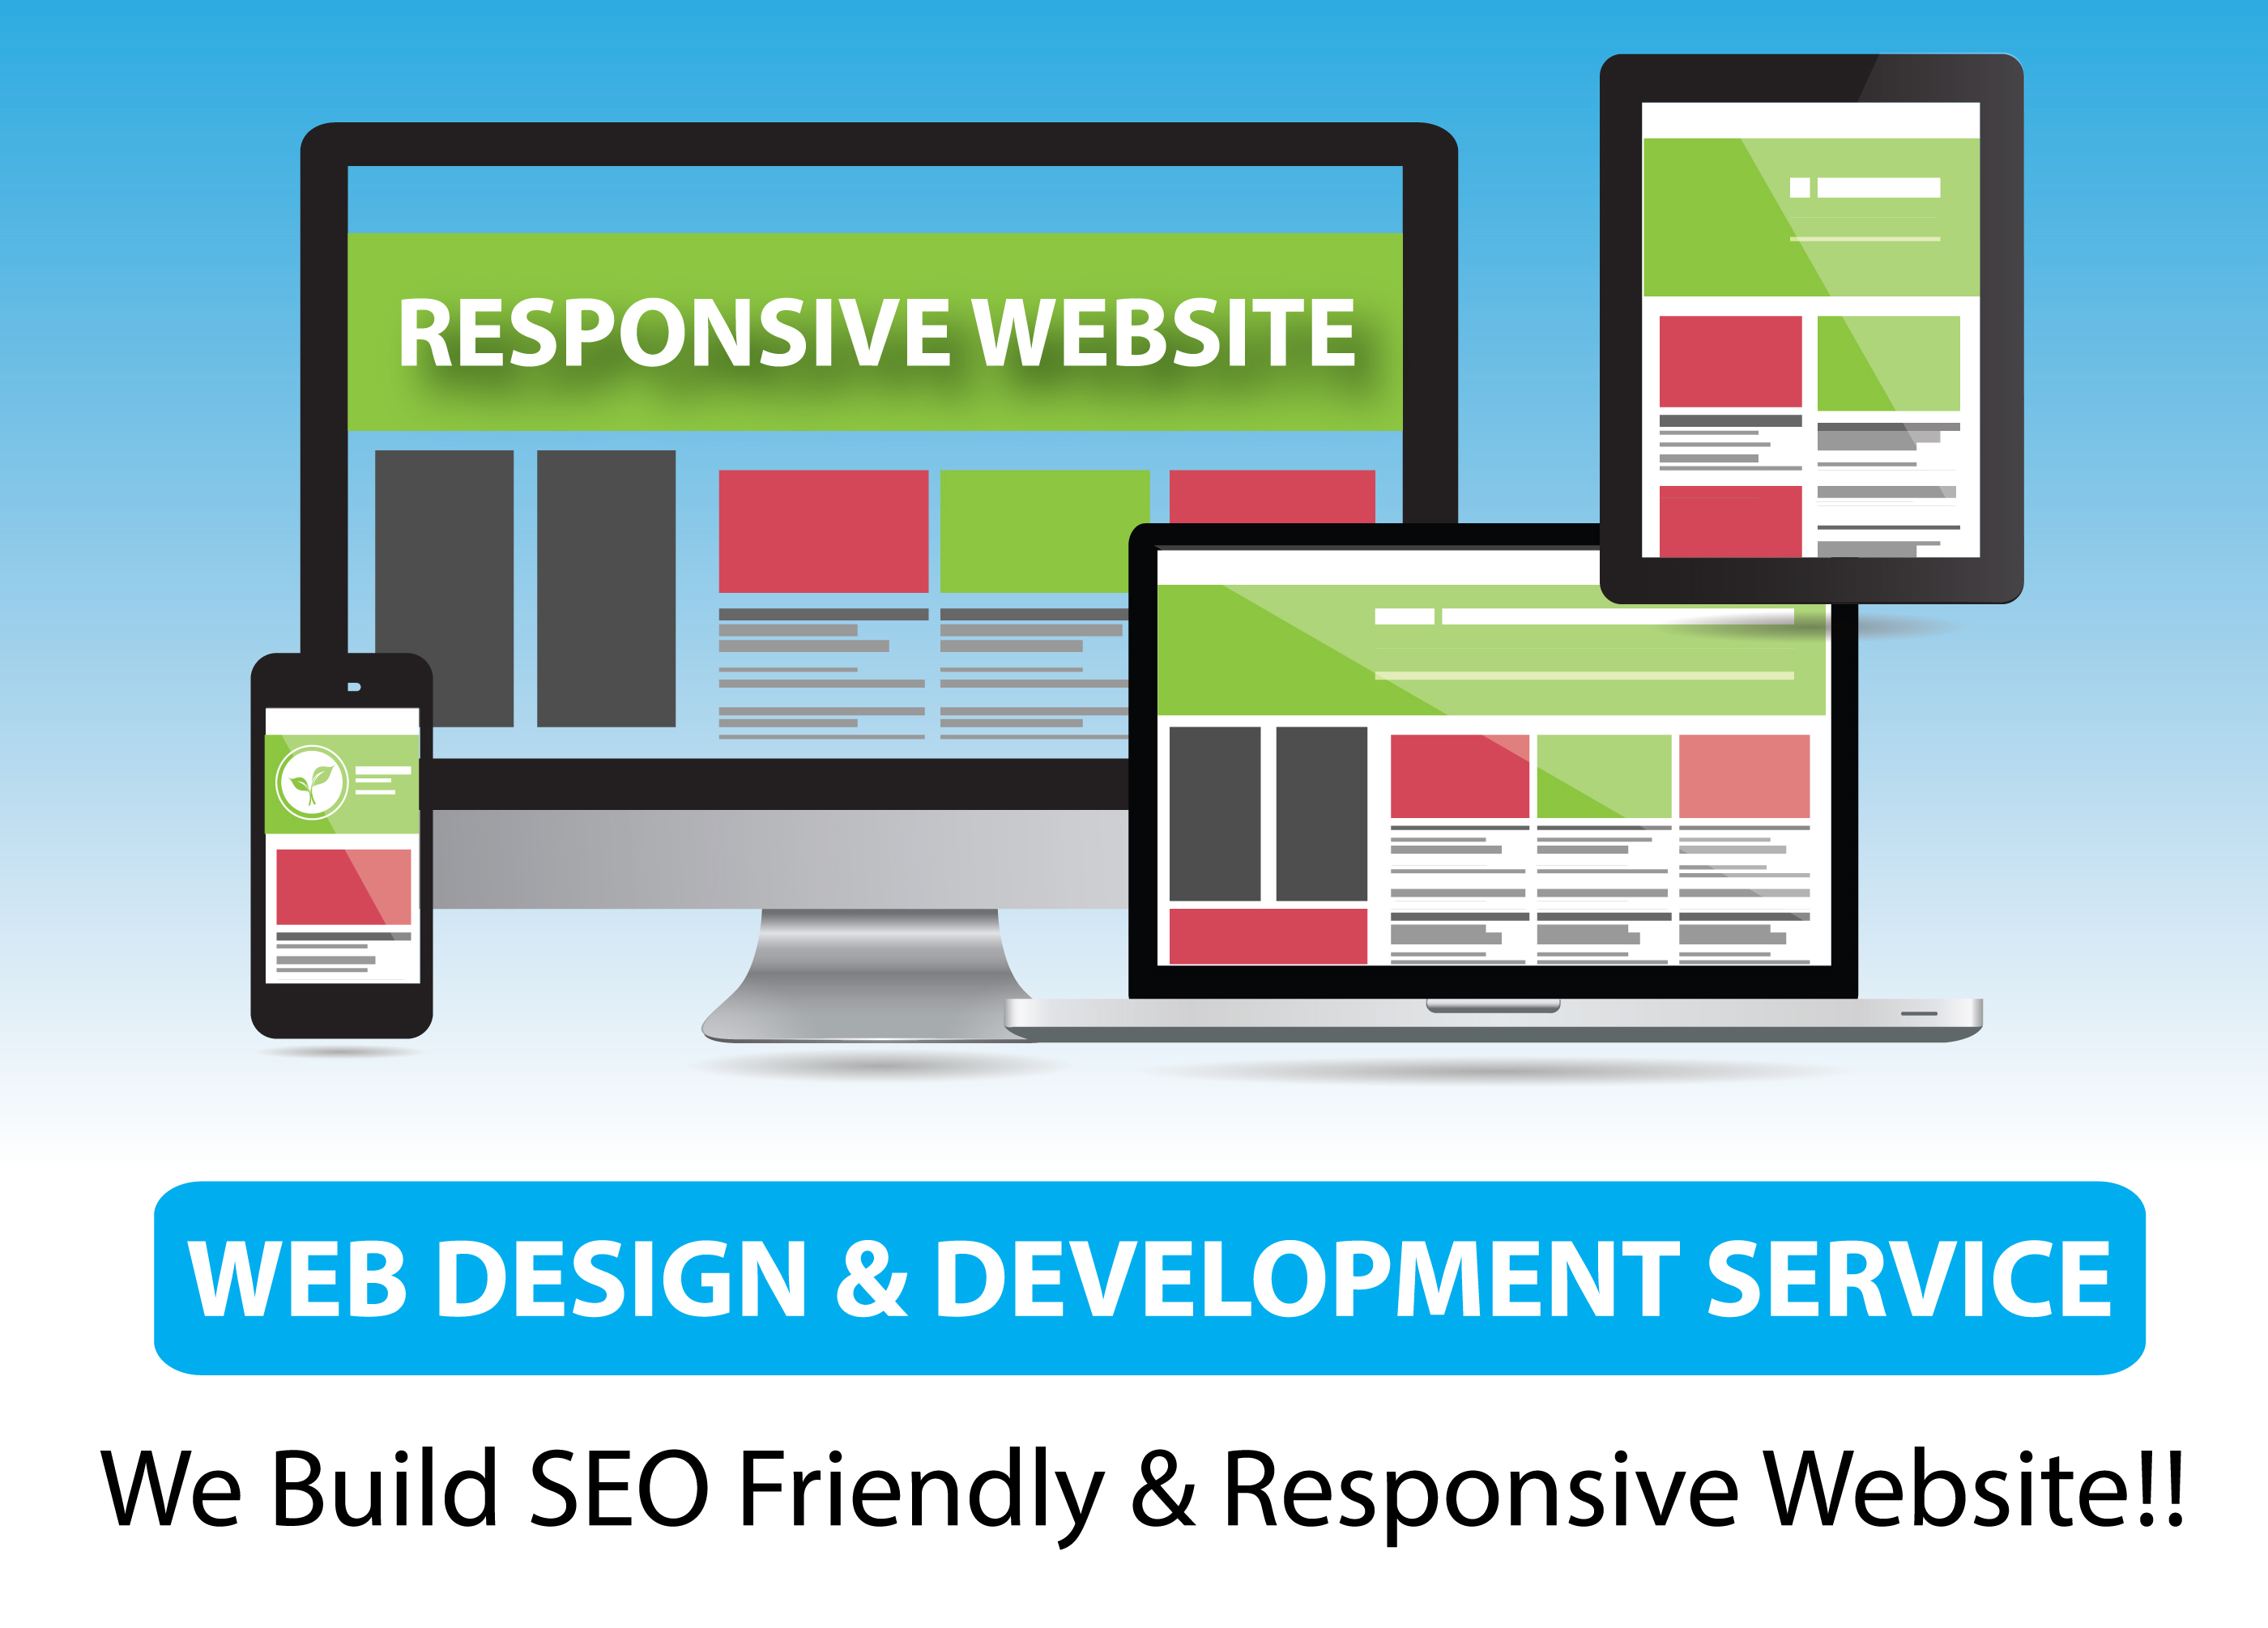 Create a Responsive & SEO Friendly Website